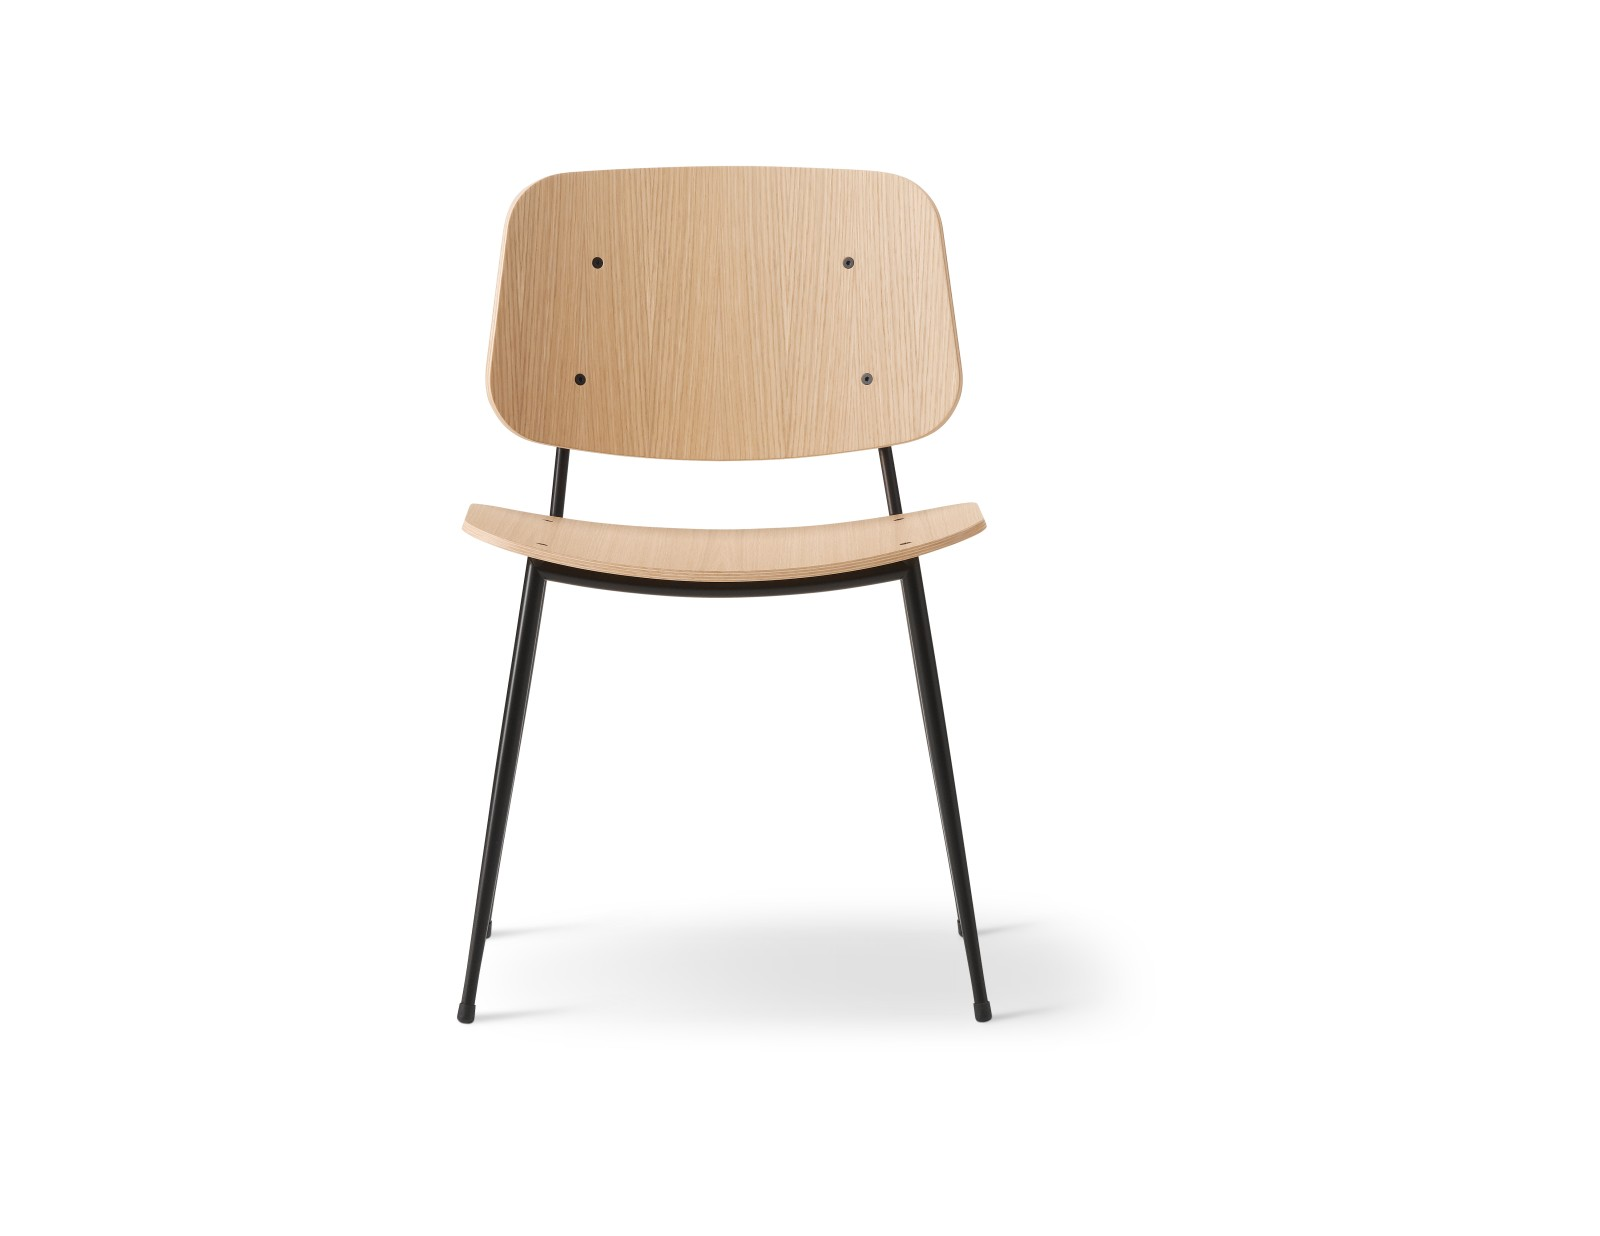 Soborg chair, steel frame Oak lacquered, Black painted